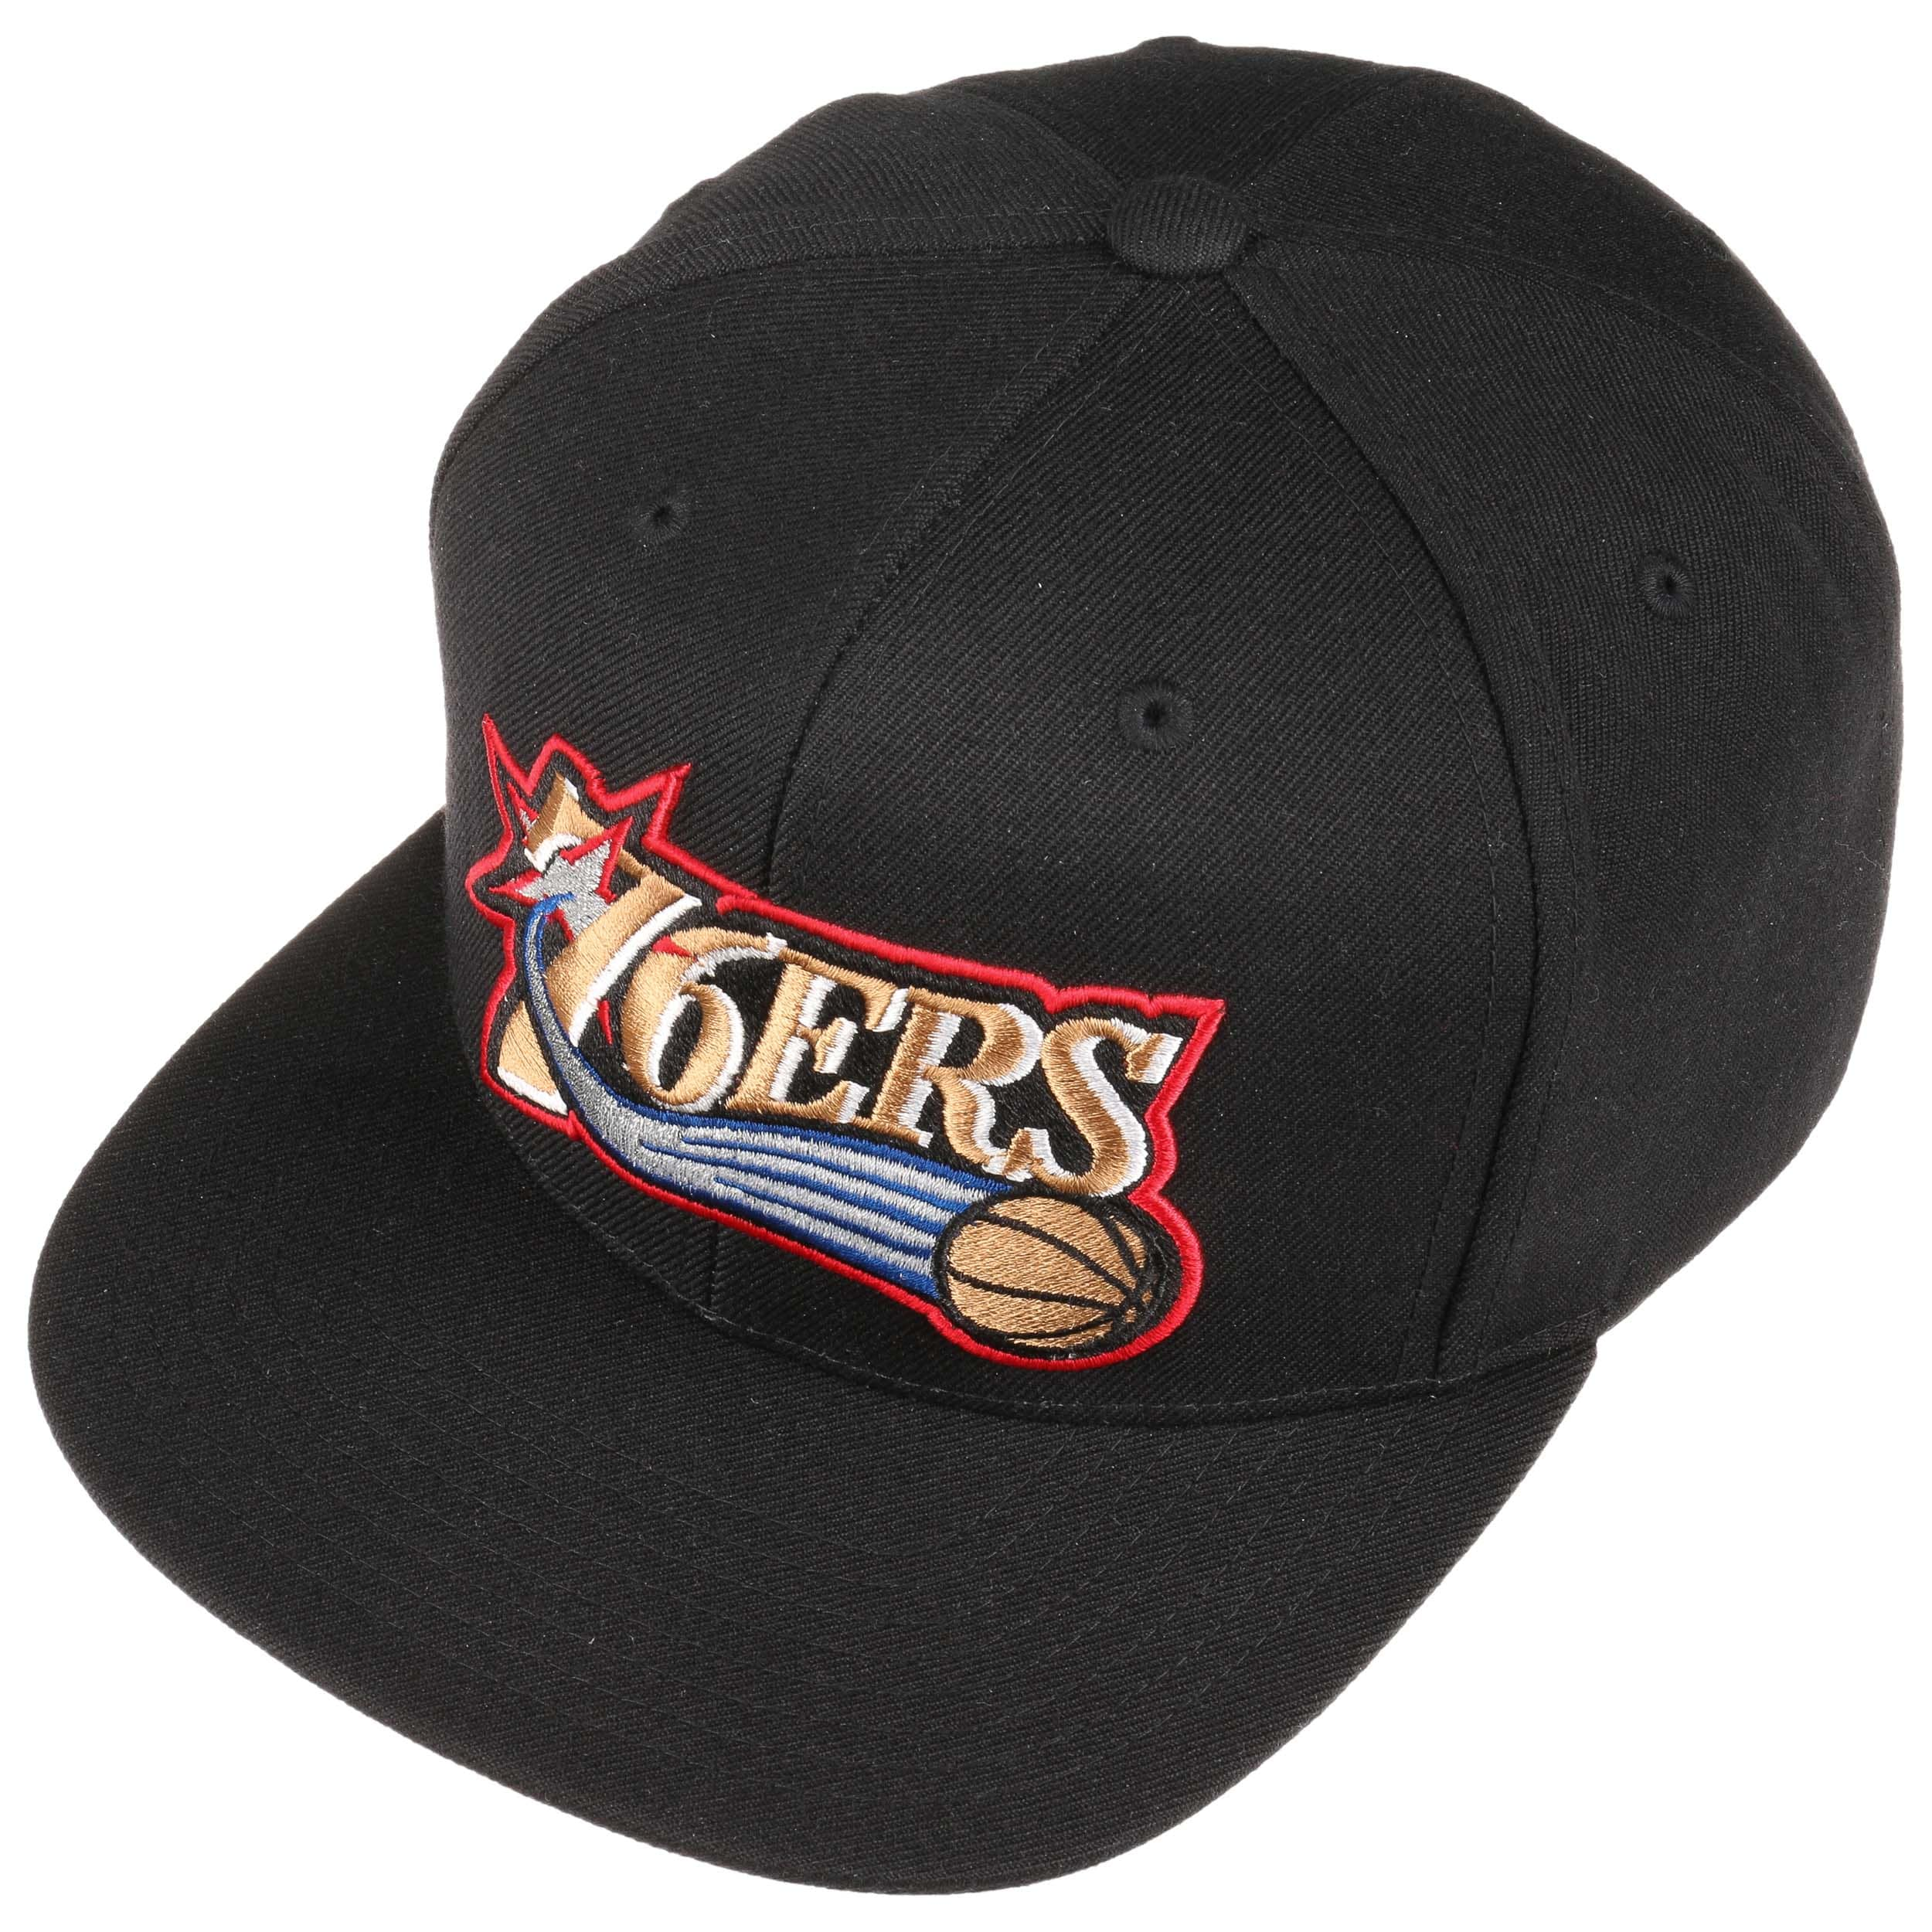 on sale 05ecd ef4a2 Wool Solid 76ers Cap by Mitchell   Ness - black 1 ...